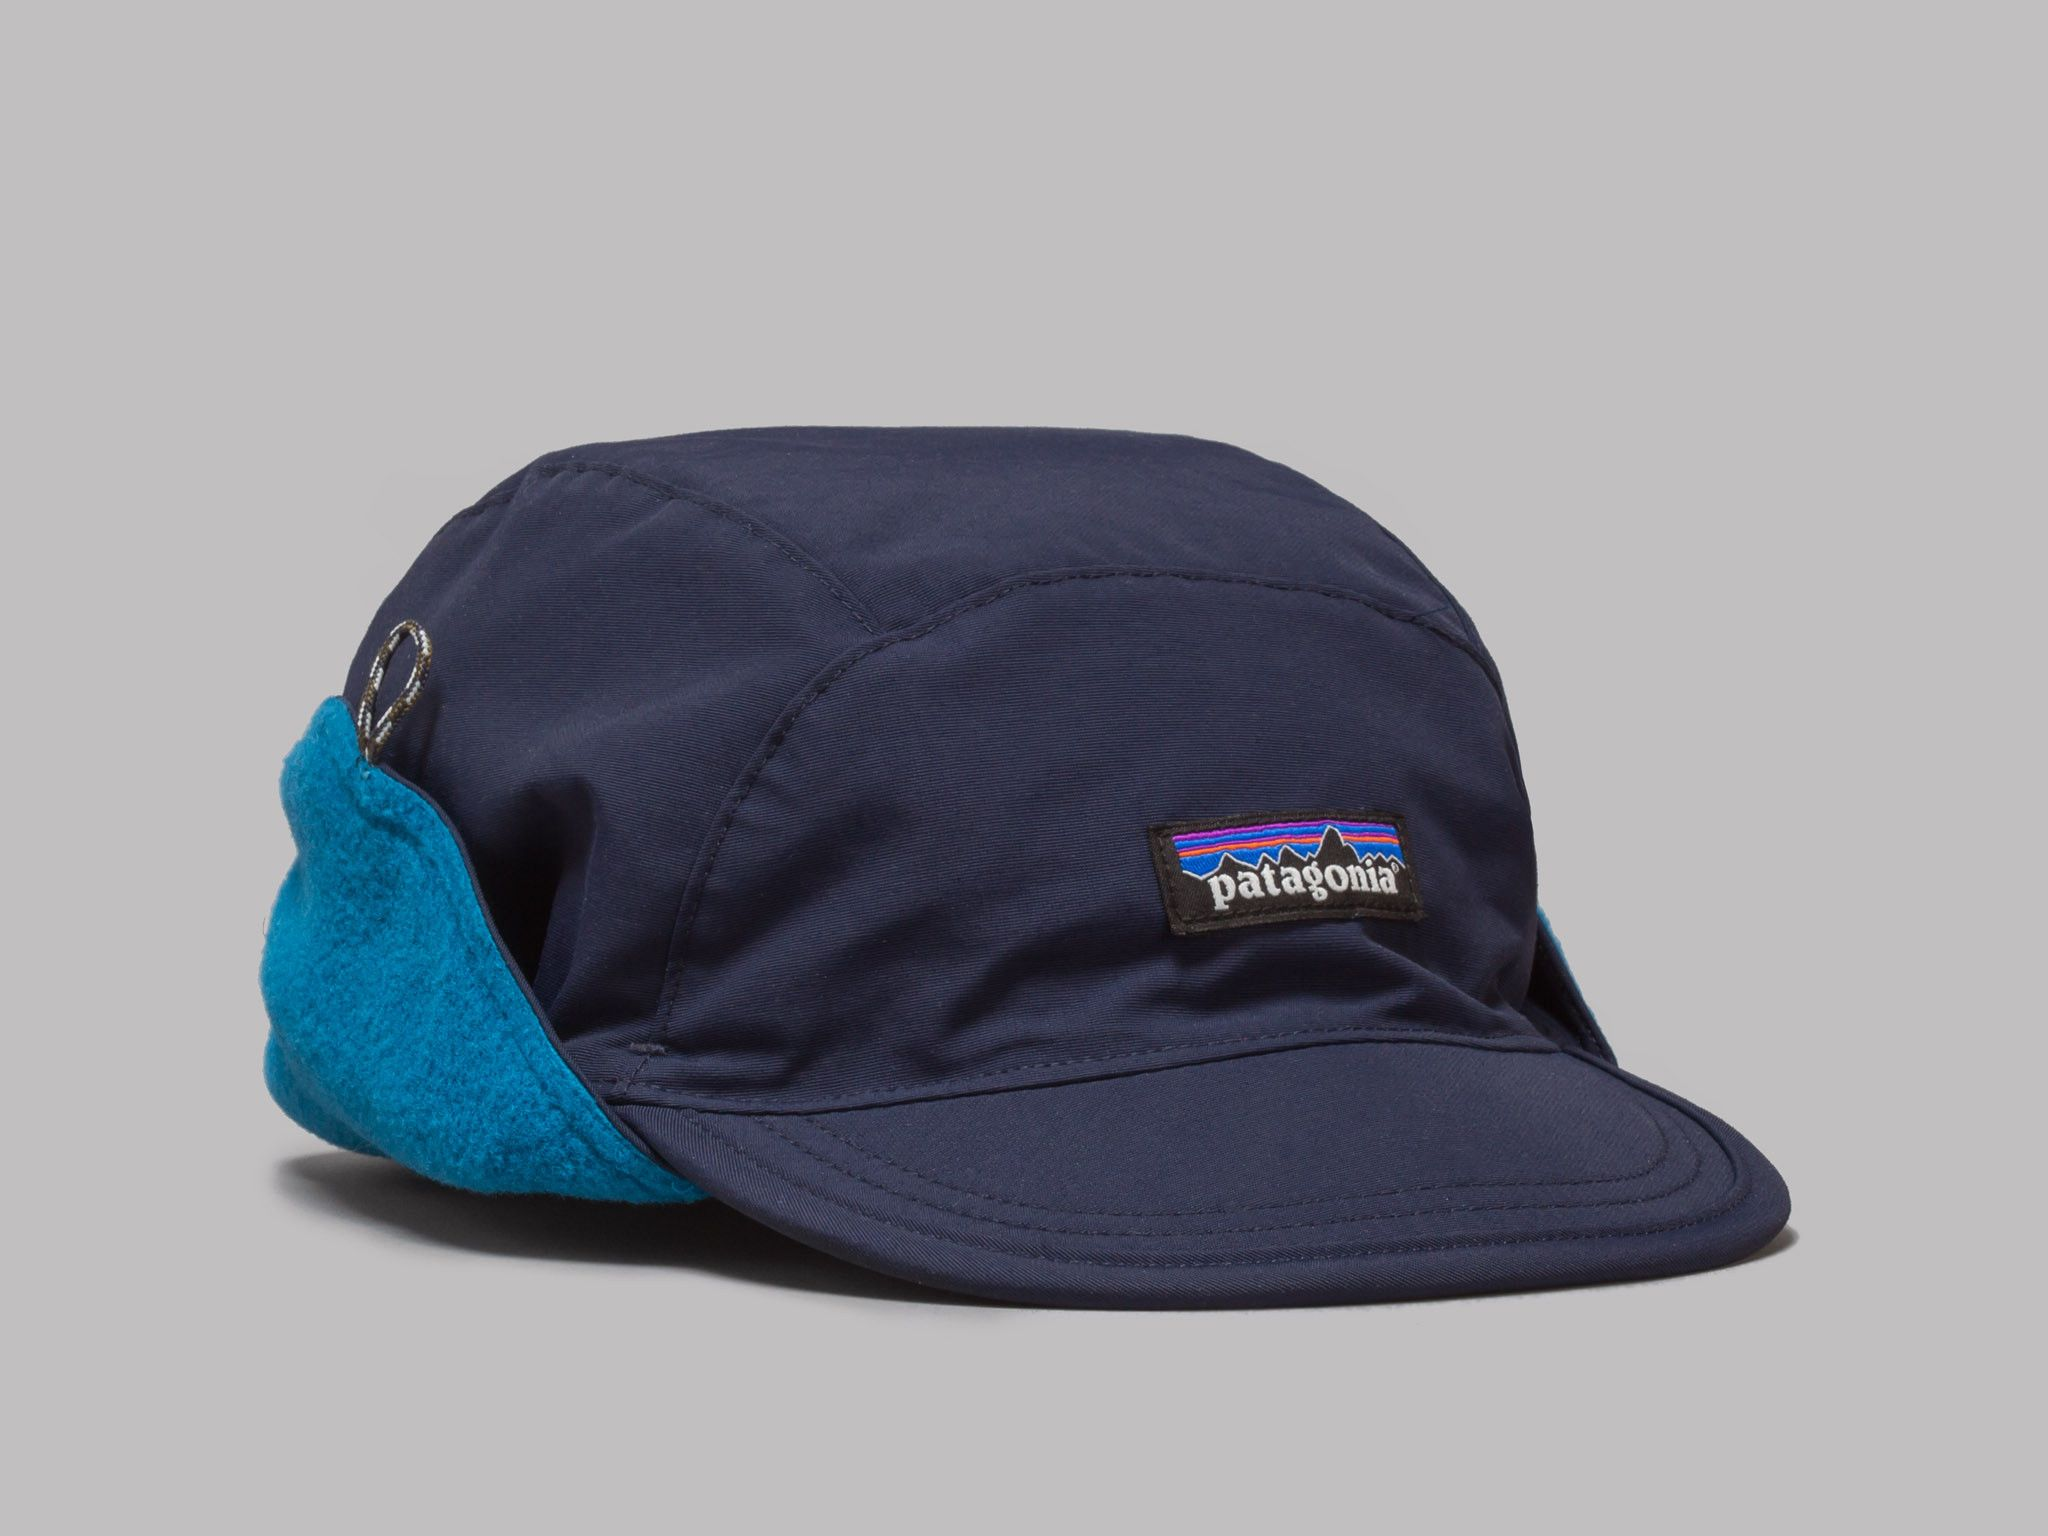 Patagonia Shelled Synchilla Duckbill Cap (Navy Blue)  10e249b102b